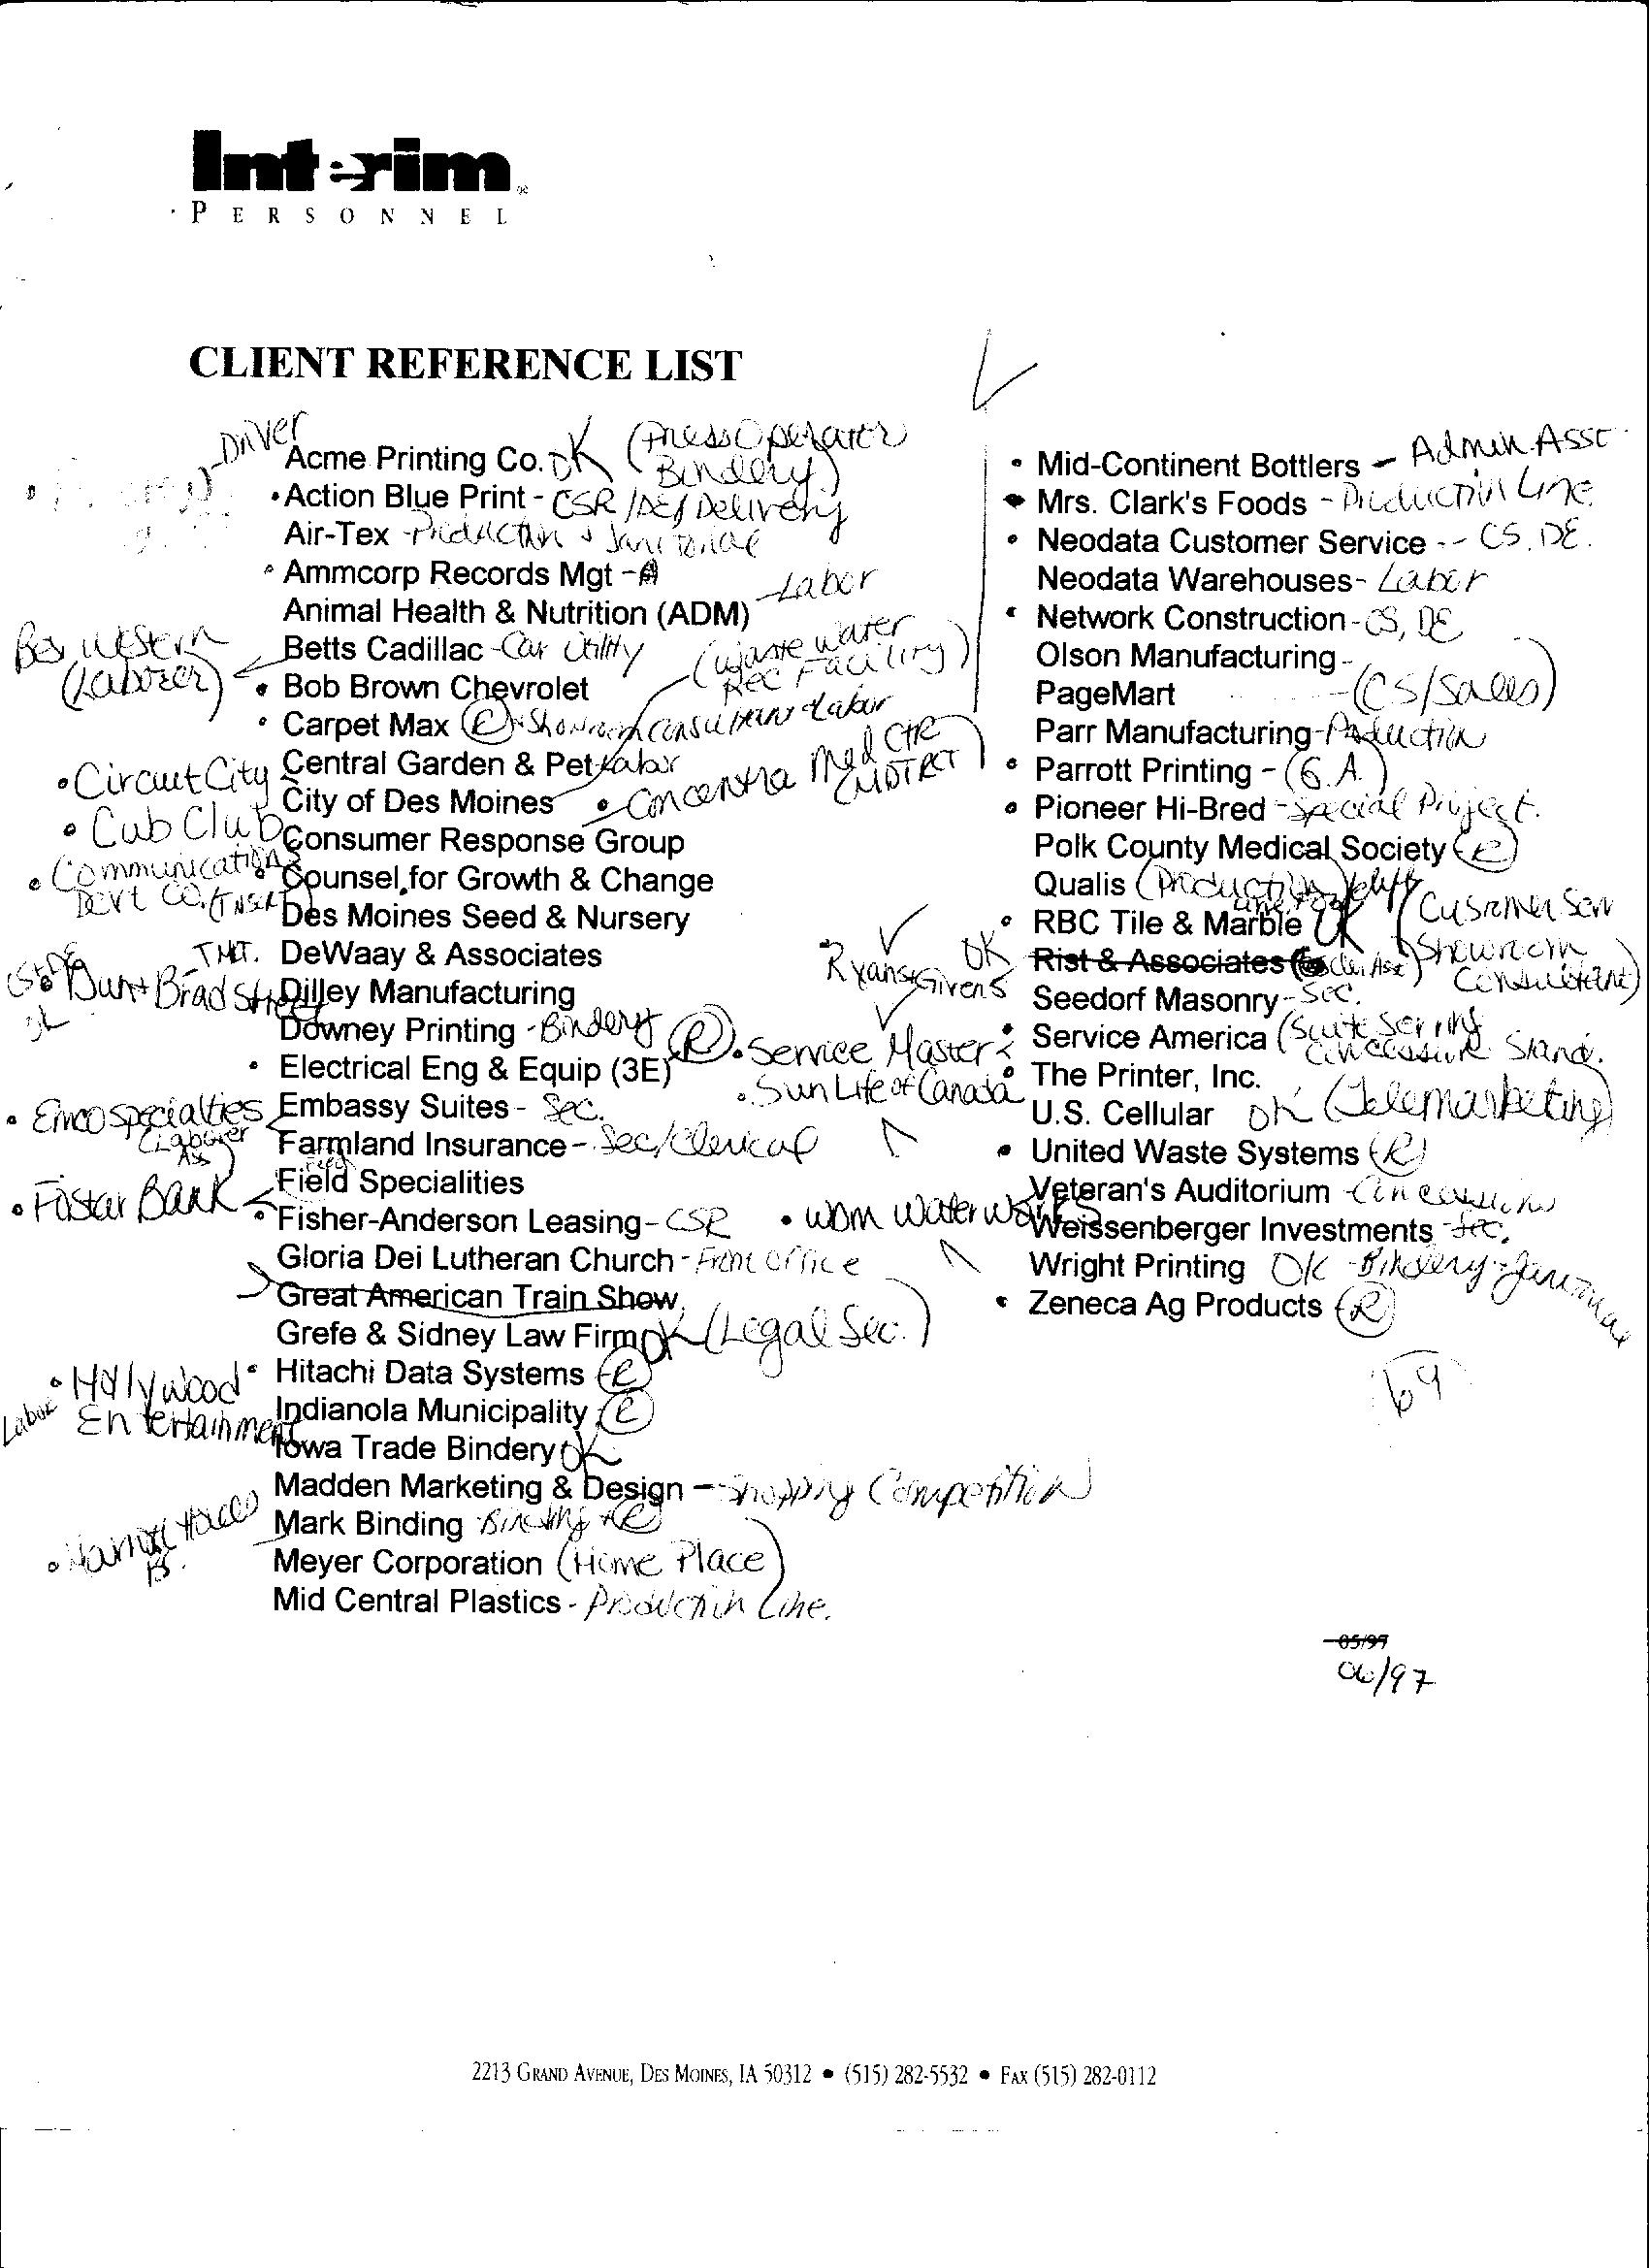 Client Reference List